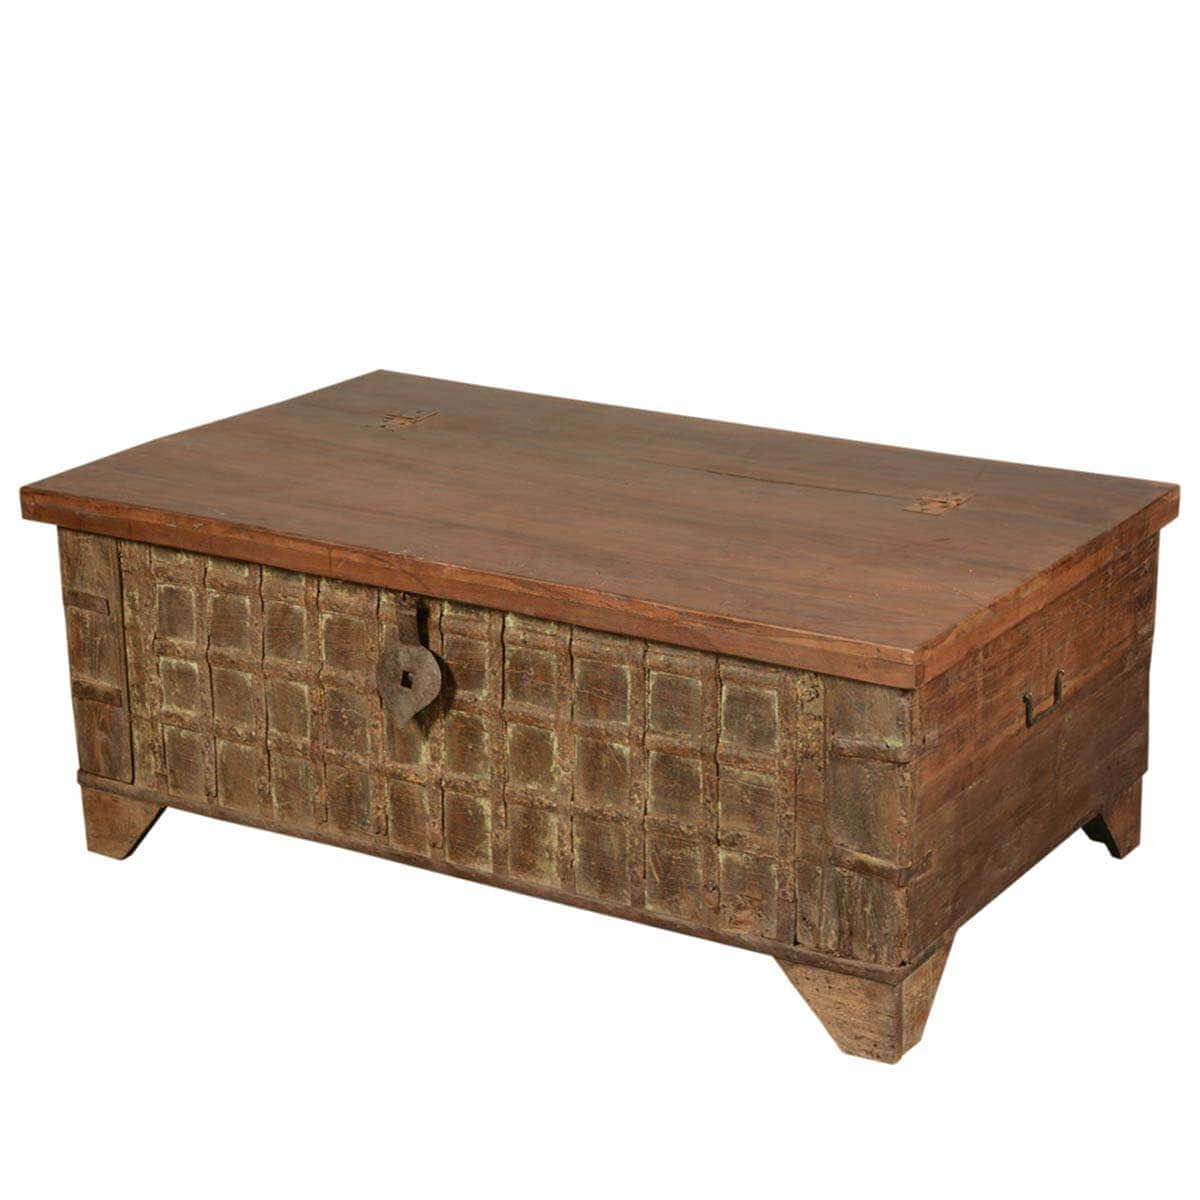 Gothic treasure reclaimed wood coffee table storage box chest Coffee table storage chest